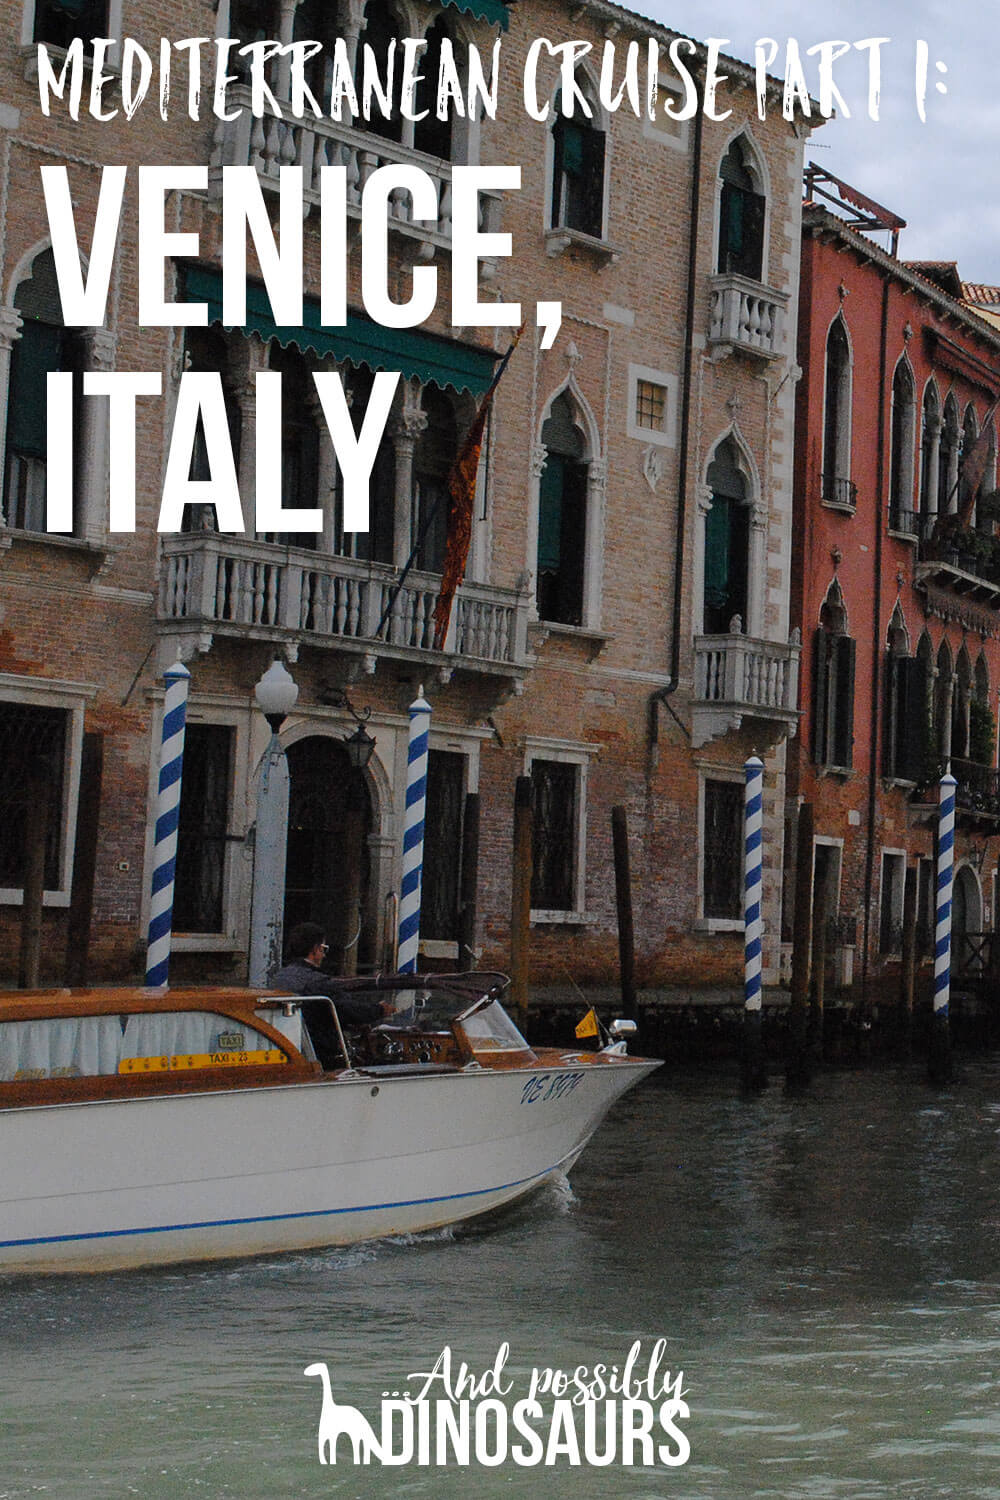 If you ever visit Venice, you'll want to check this quick guide out before you go! Click through to learn the one thing you absolutely must do if you go.